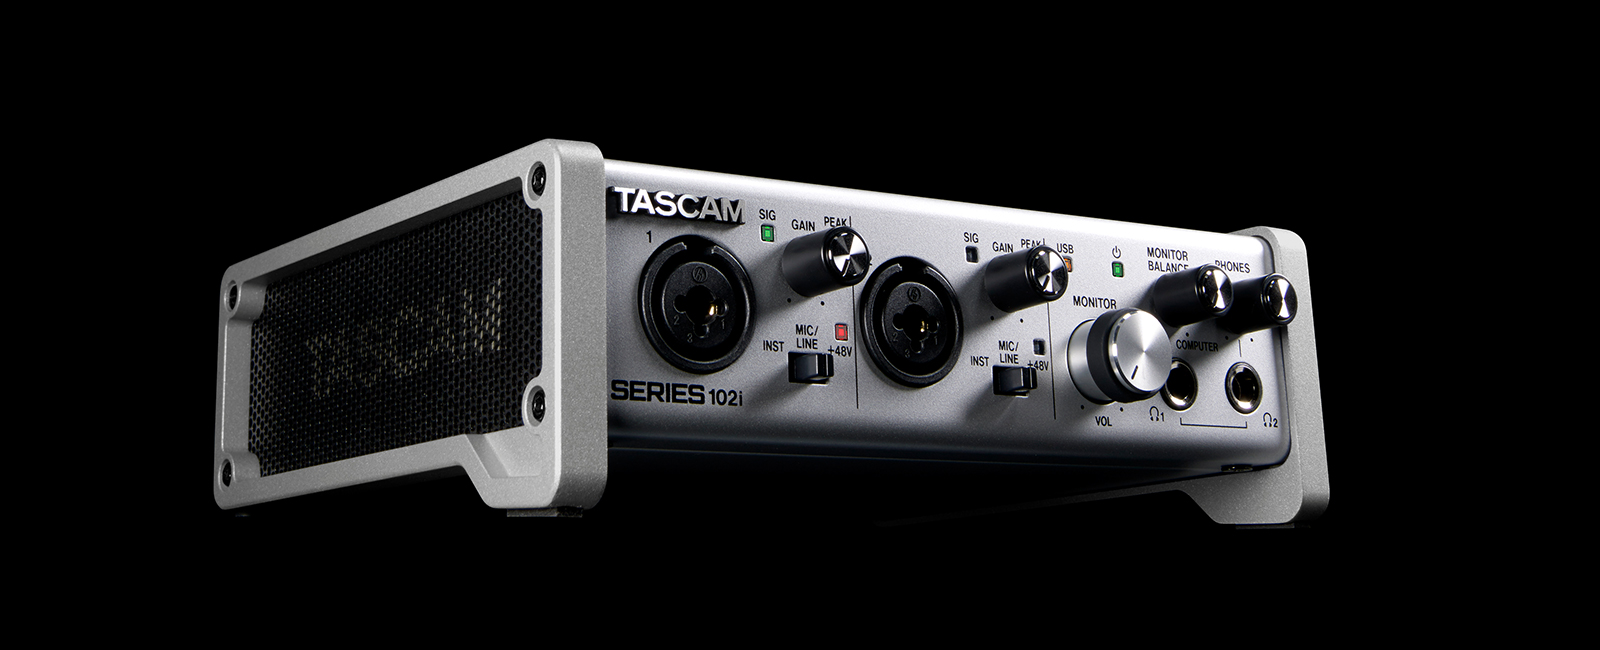 SERIES 102i | OVERVIEW | TASCAM - United States